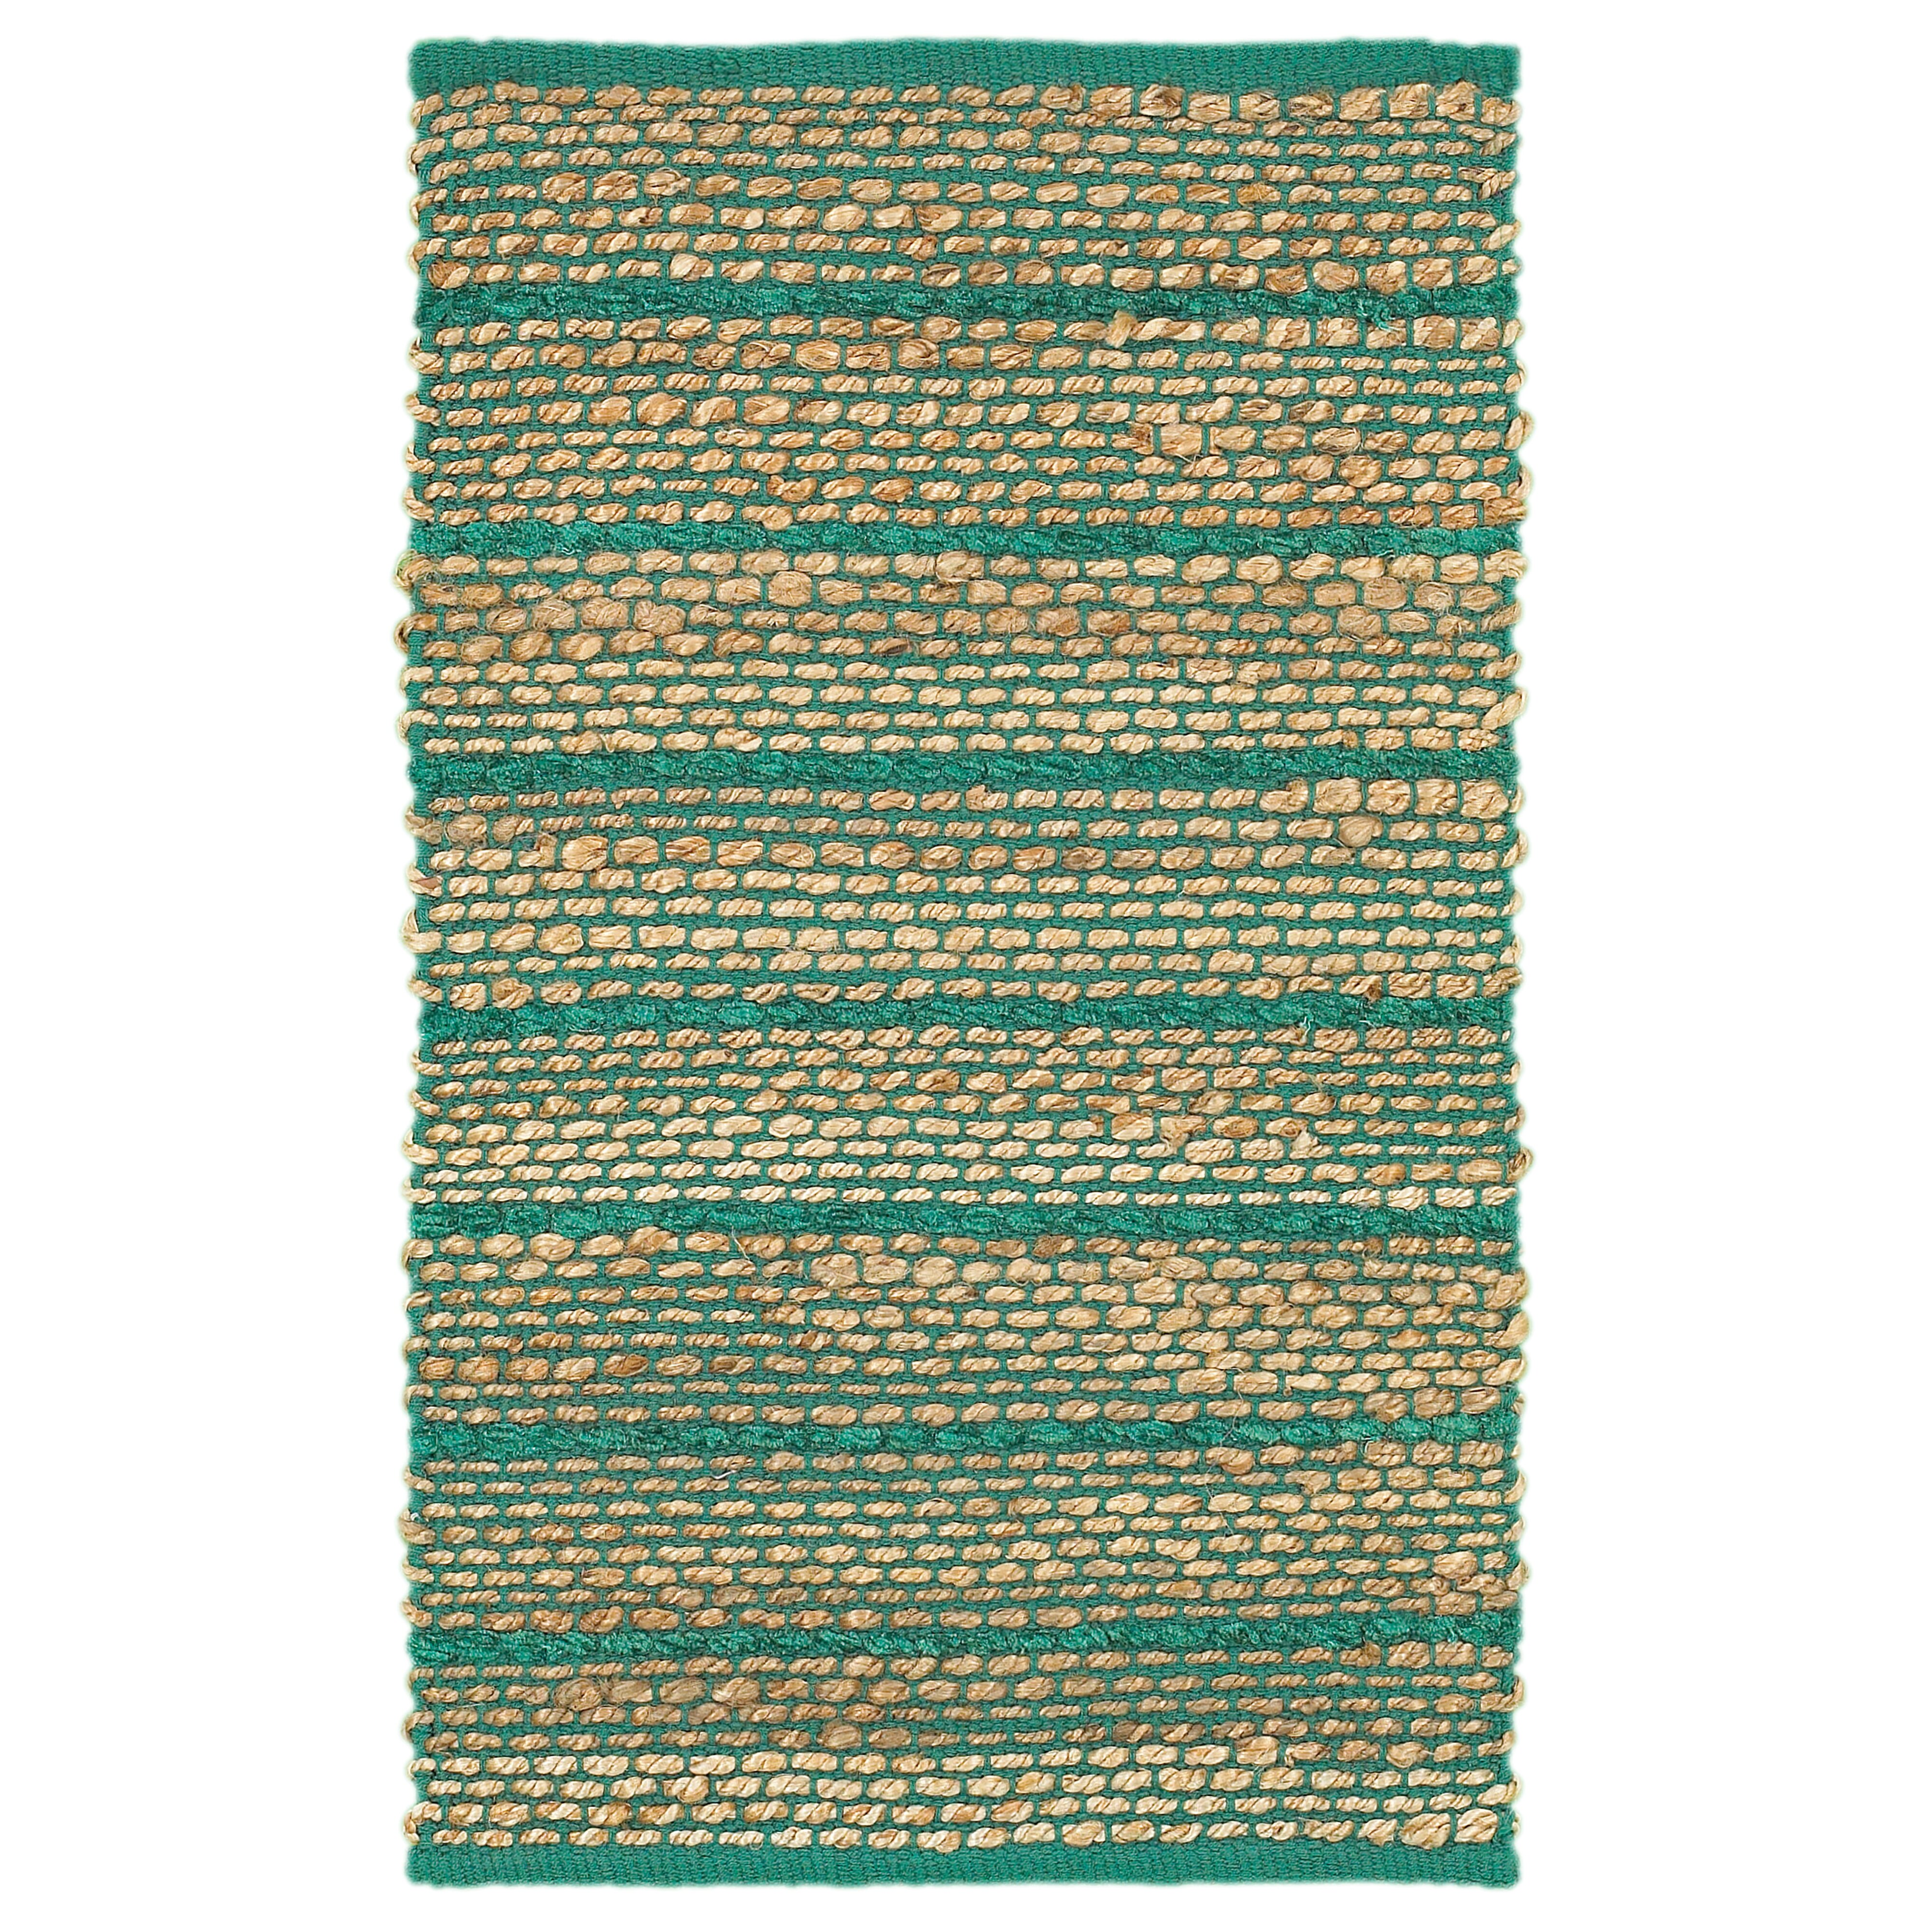 LR Resources Accent Green/Blue Area Rug & Reviews